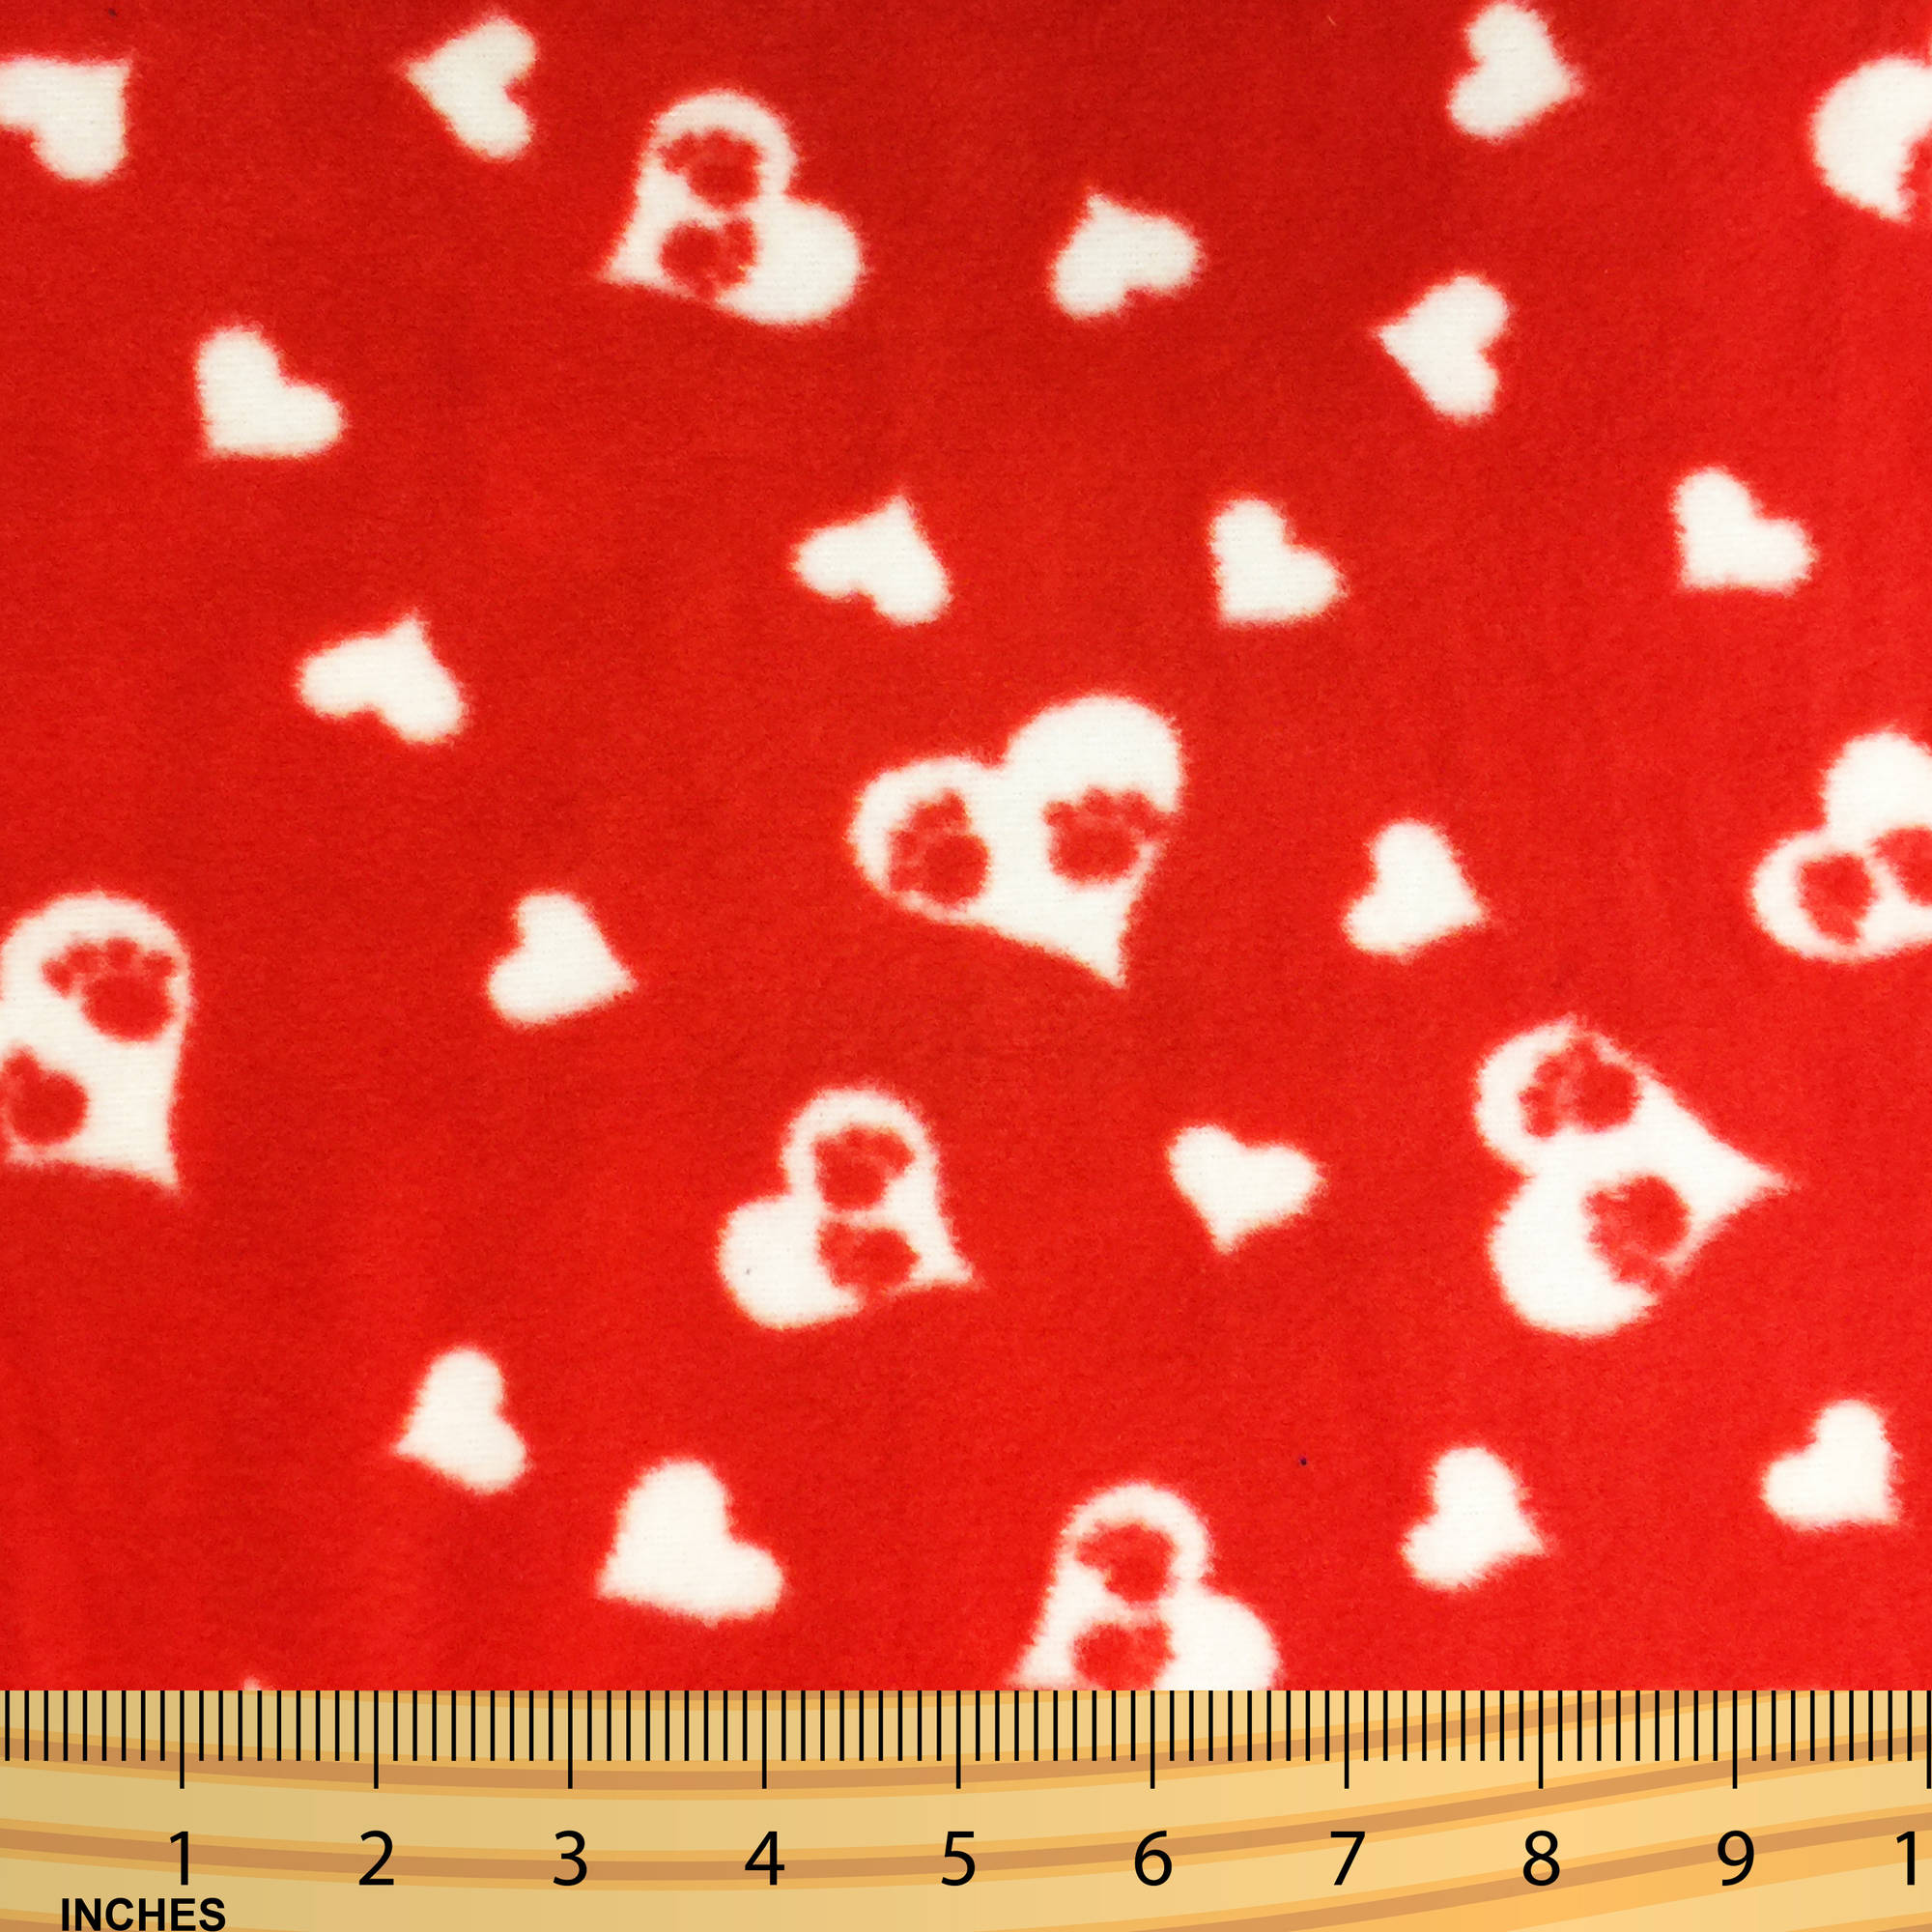 SHASON TEXTILE (2 Yards cut) POLAR FLEECE FABRIC 100% POLYESTER ANTI-PILL, New Valentines Hearts And Paws, 2 Yards Cut